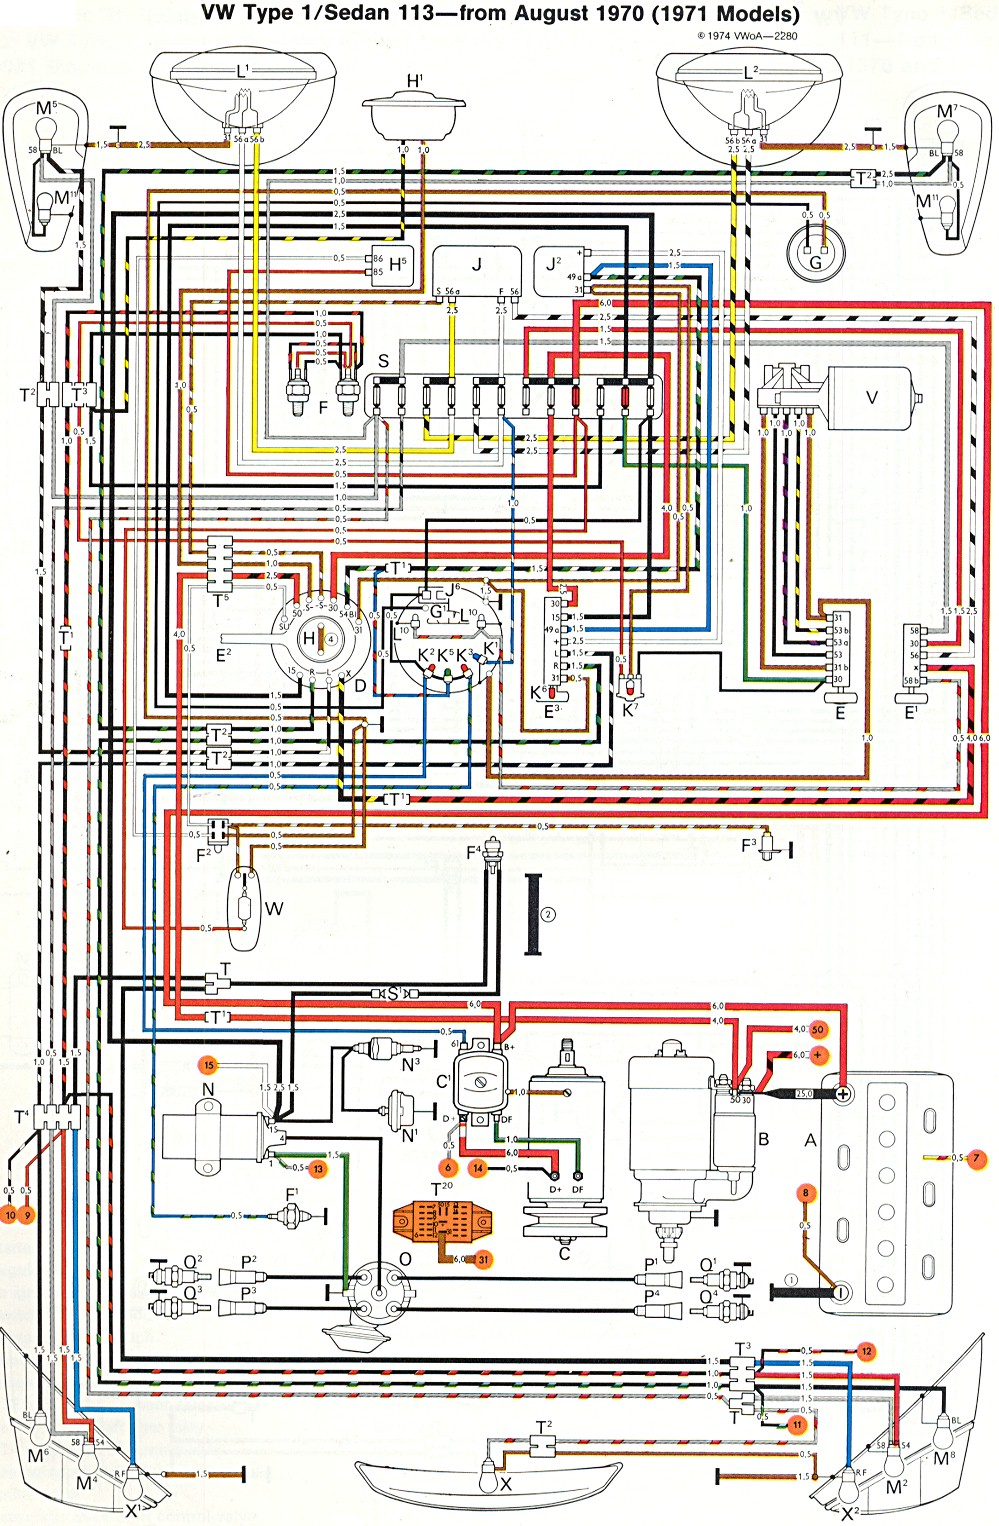 1974 Super Beetle Wiring Diagram Archive Of Automotive Bea Diagrams 1973 Harness Simple Rh David Huggett Co Uk